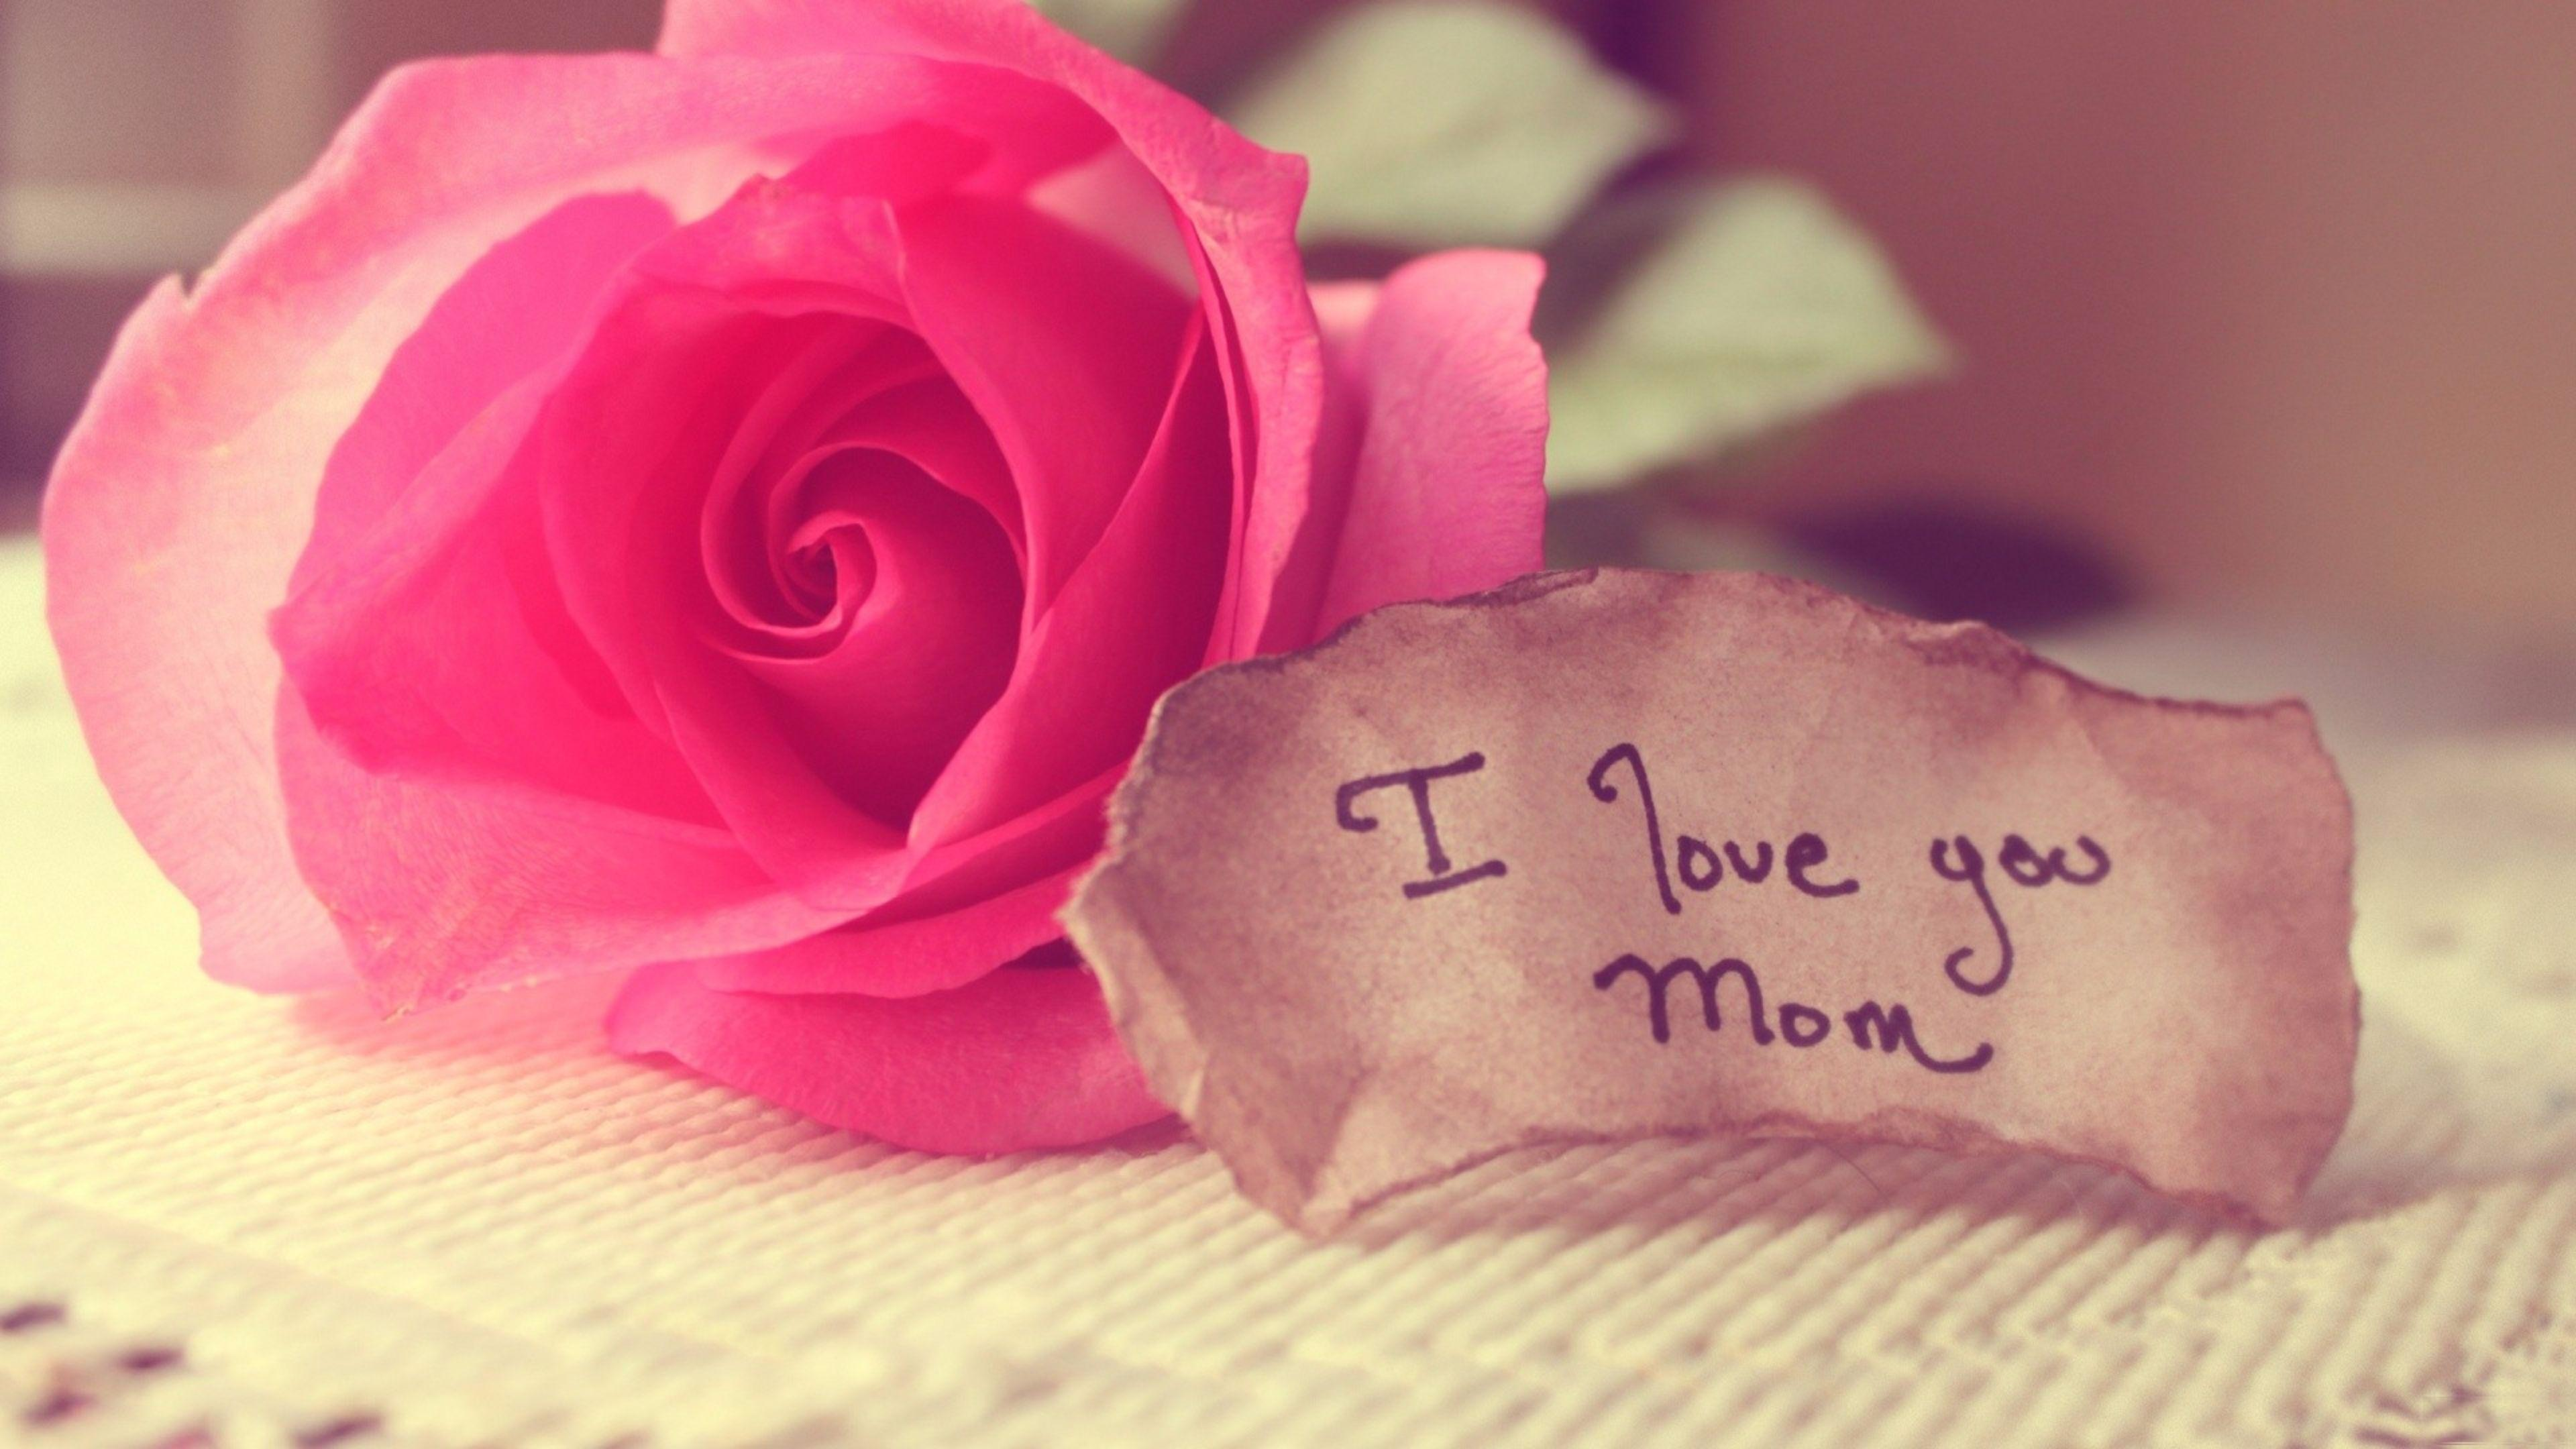 To Mom 2016 4K Love Wallpapers